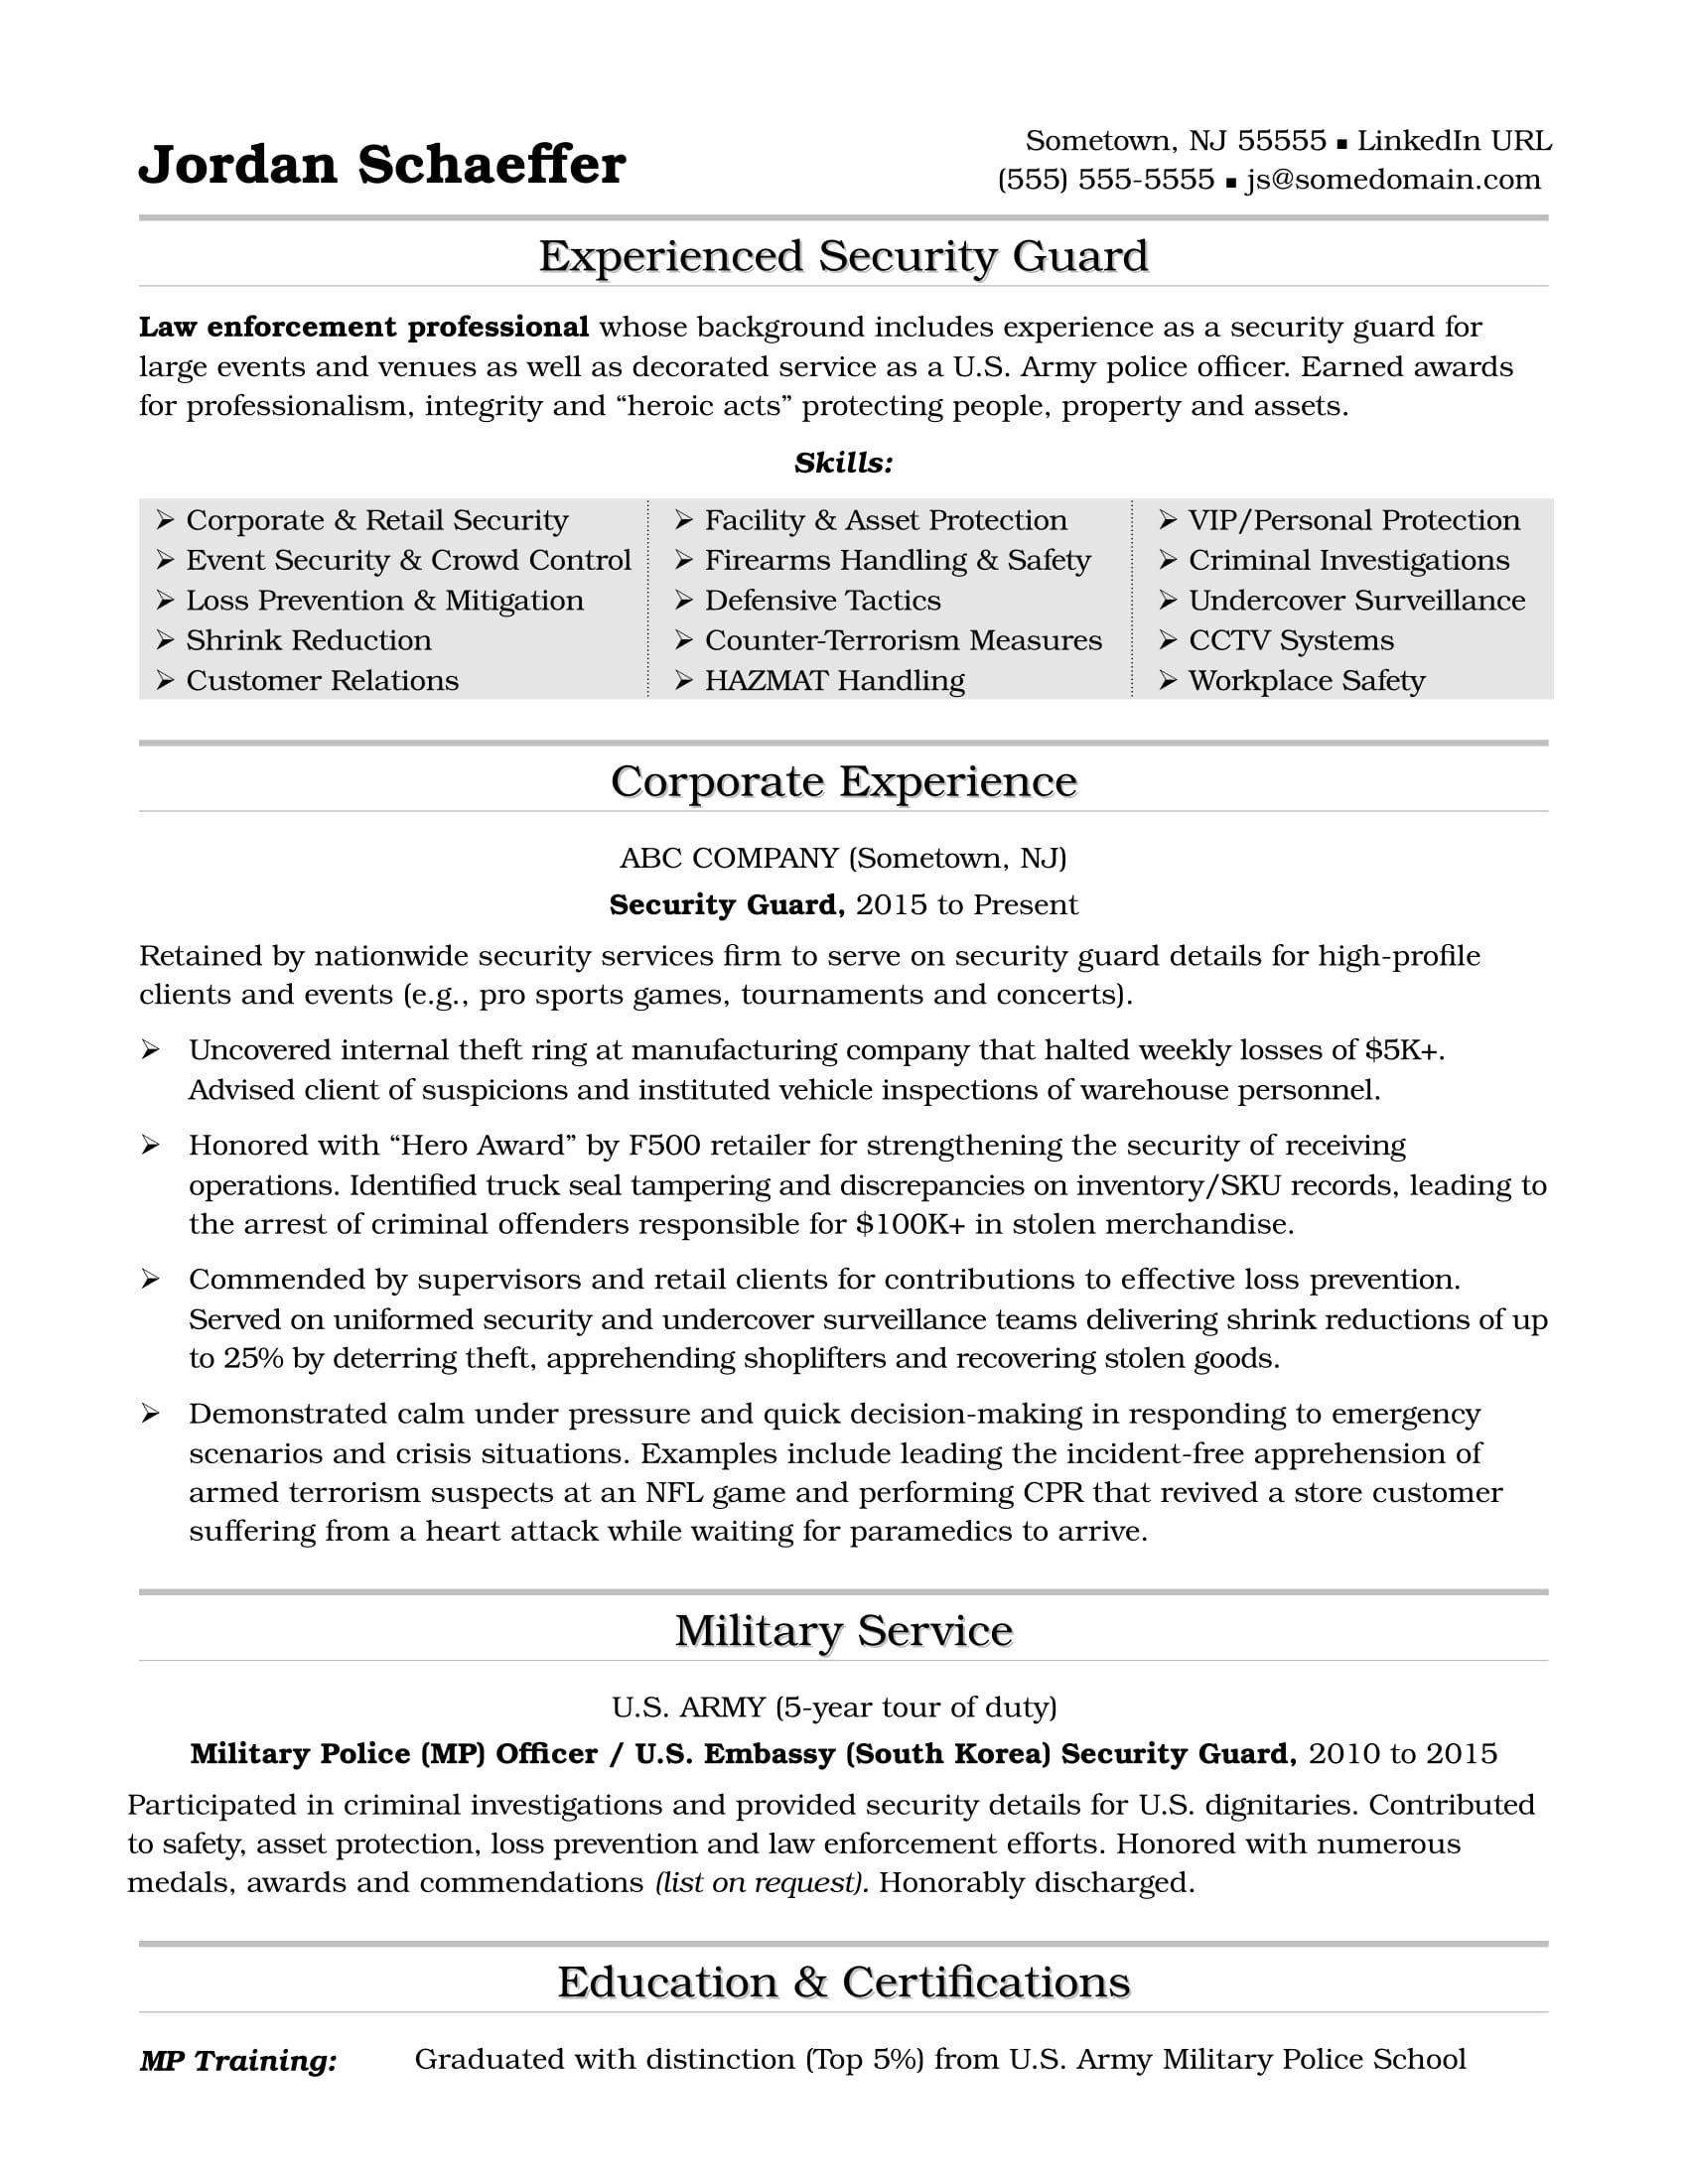 security guard resume sample monster armed officer job description for securityguard Resume Armed Security Officer Job Description For Resume